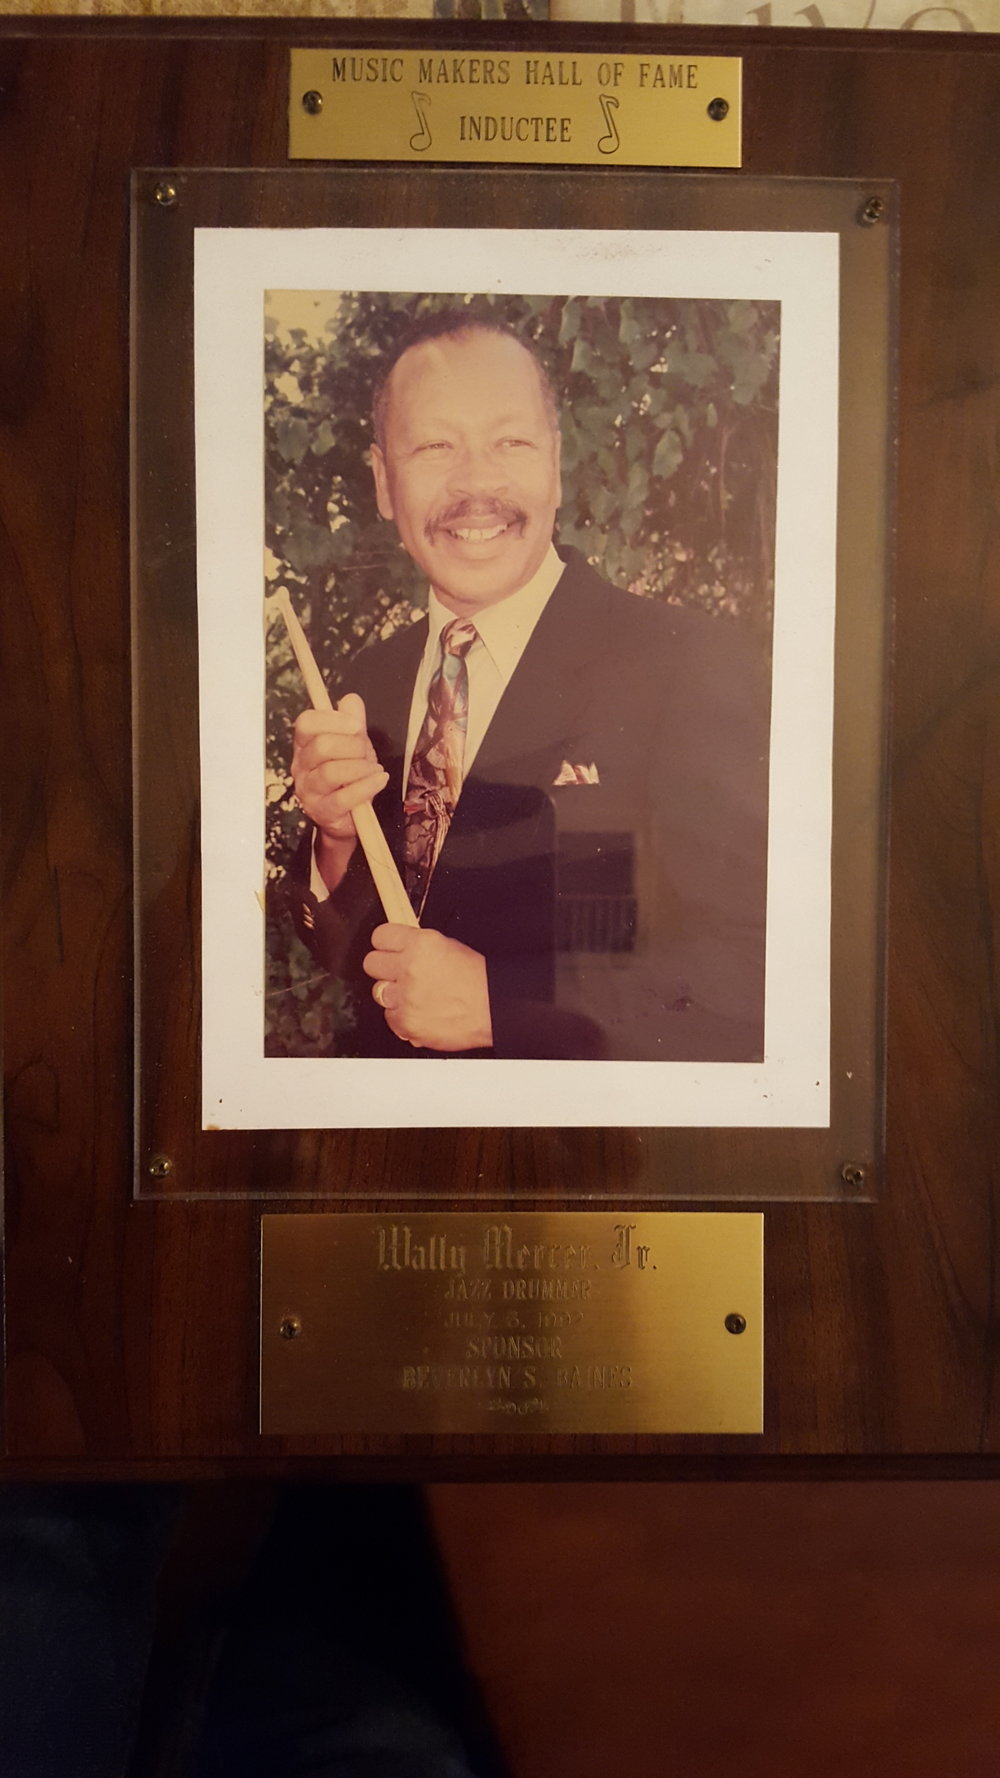 Wally Mercer Jr.'s Music Makers Hall of Fame Award.